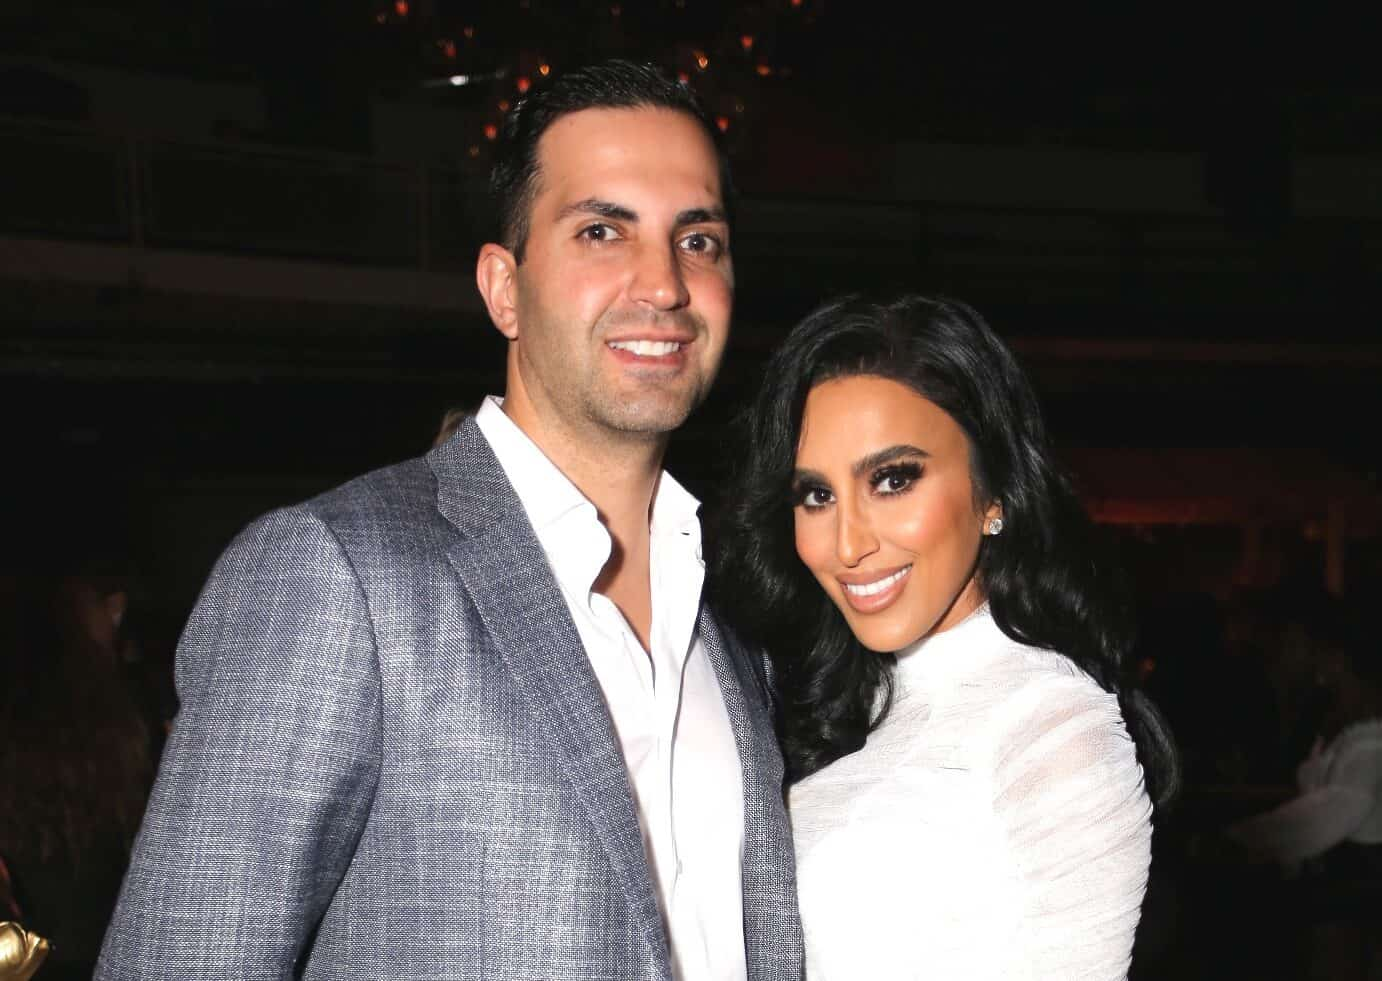 EXCLUSIVE: Lilly Ghalichi Dismisses Her Divorce Filing as Ex Shahs of Sunset Star Reunites With Husband Dara Mir For Daughter's Birthday, See Photos